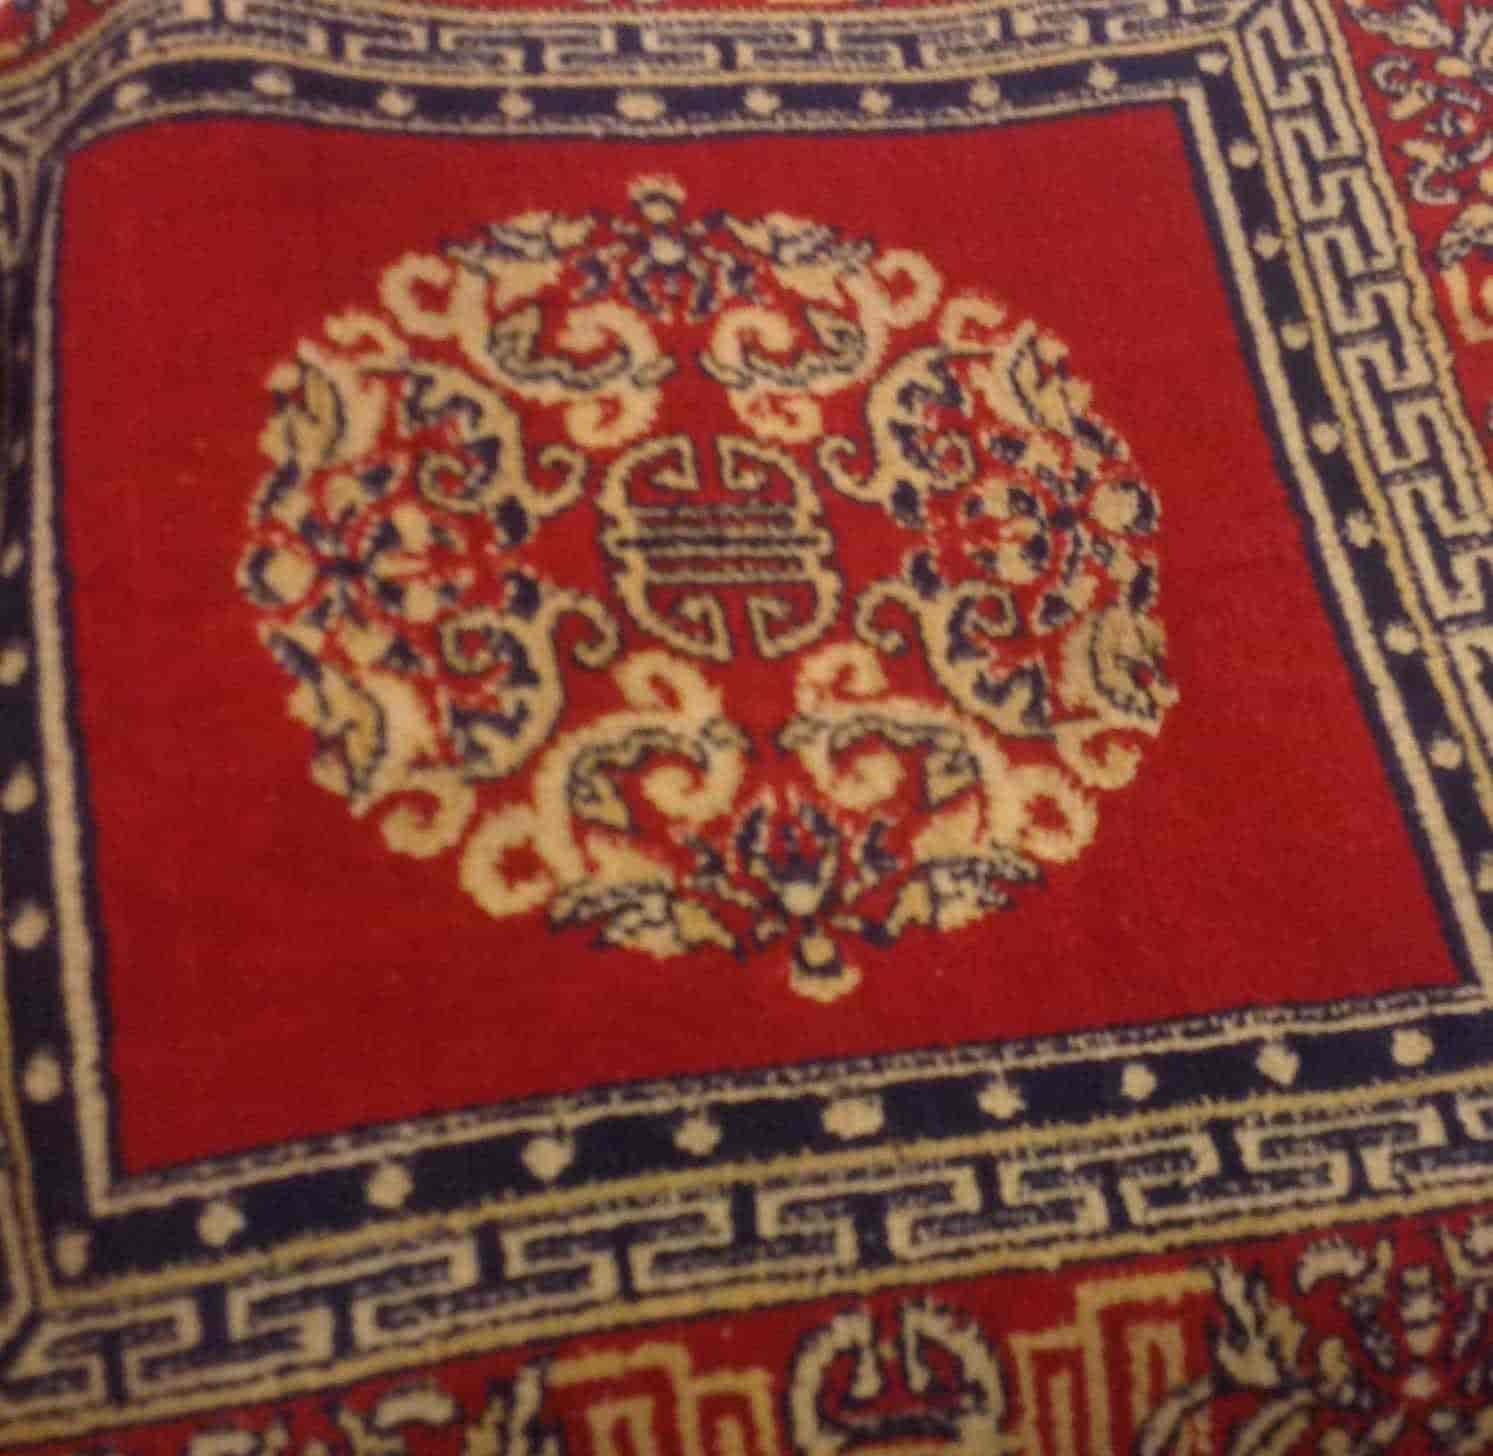 Asian Carpet Asian Carpets Nampally Carpet Dealers In Hyderabad Justdial